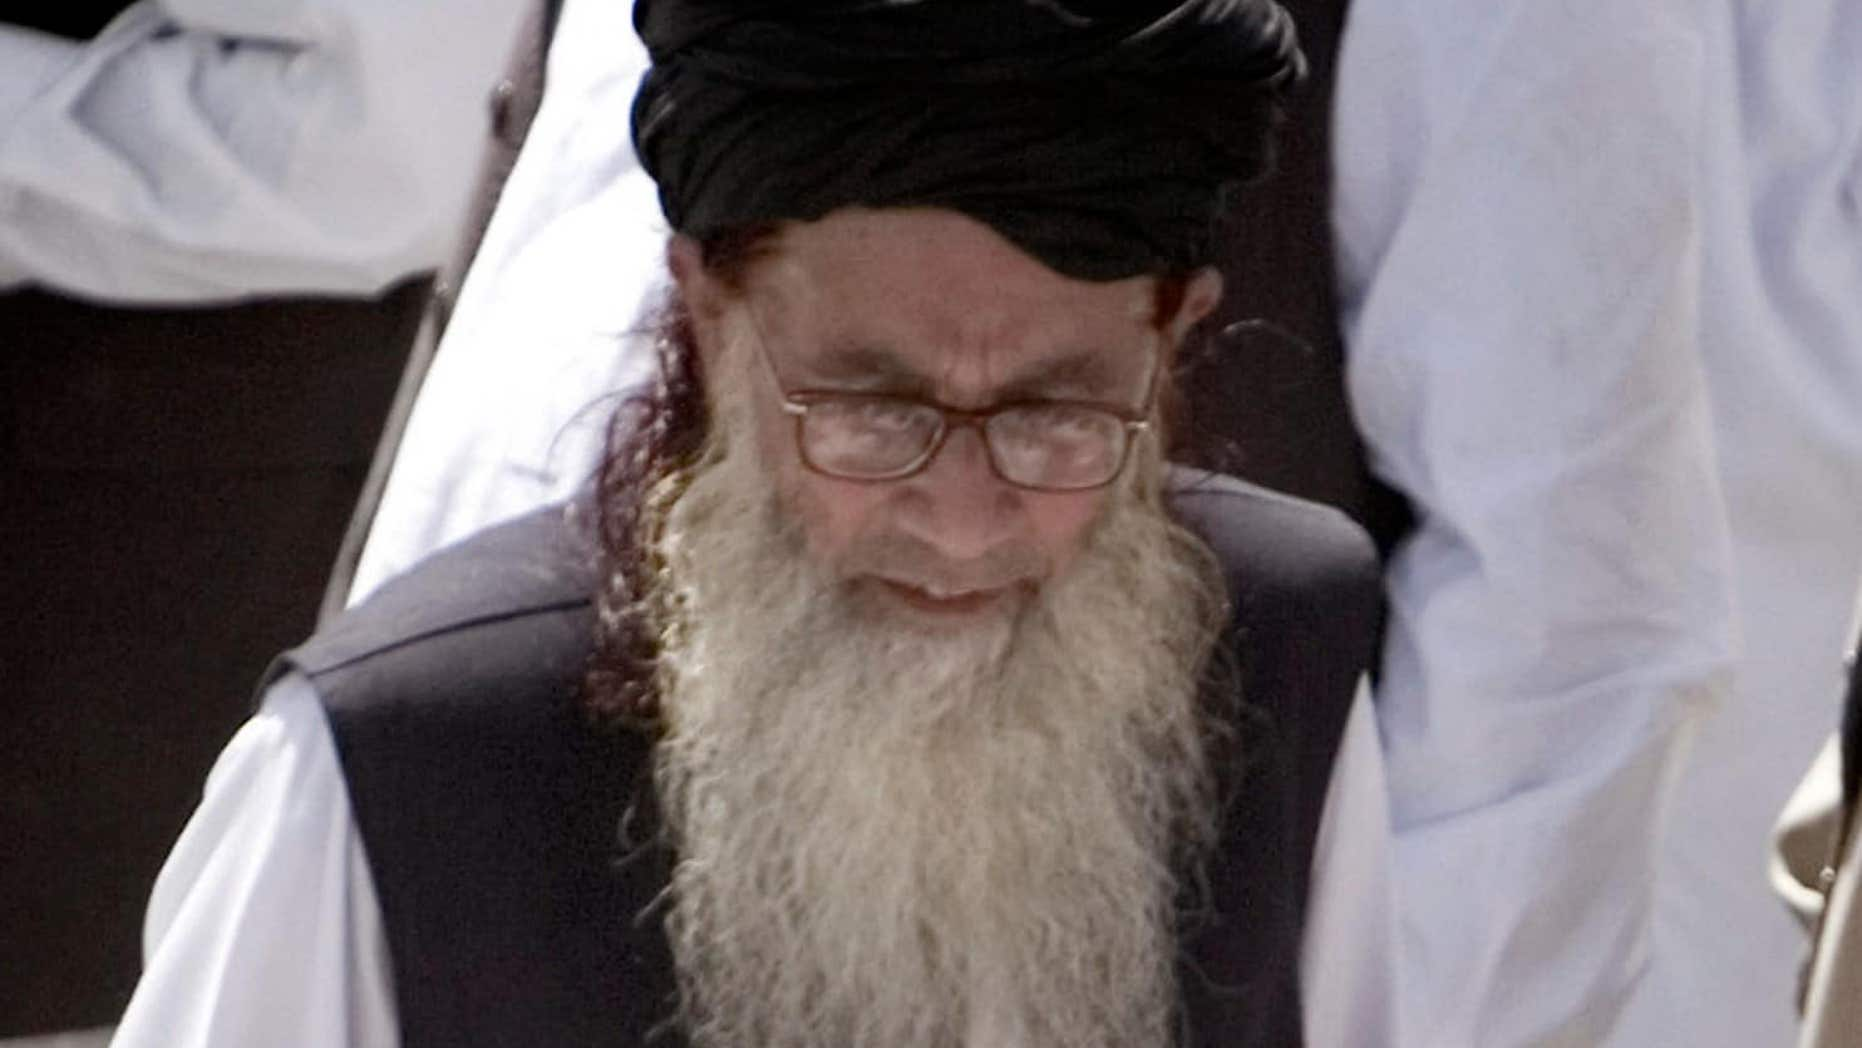 FILE 2009:  Pakistan's hard line cleric Sufi Muhammad arrives to address his supporters in Mingora, Pakistan.